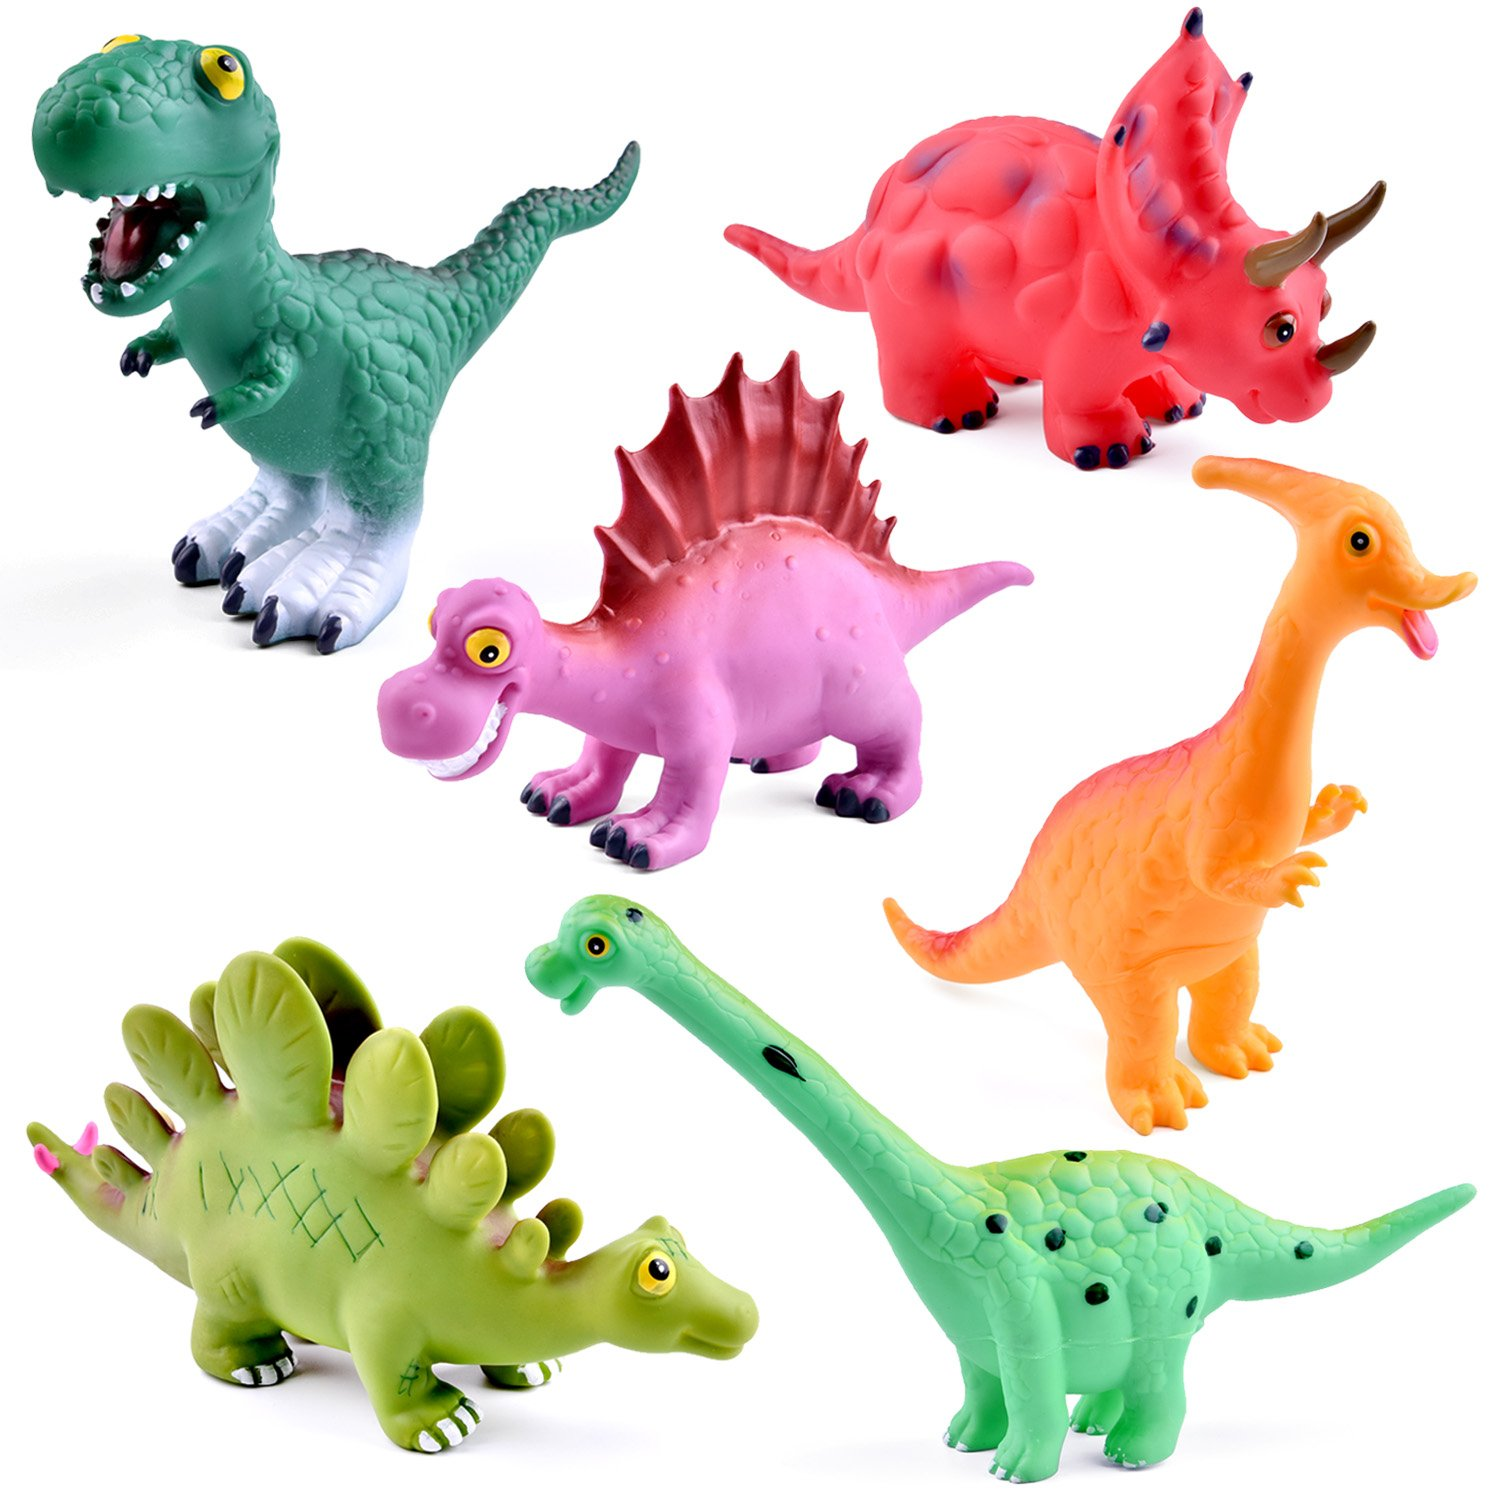 Fun Little Toys 9'' to 12'' Dinosaur Baby Bath Toys 6 Pack Dinosaur Figures Playset Water Squirt Toys Perfect as Bathtub Toys Dinosaur Party Supplies Party Favors Toddler Gifts